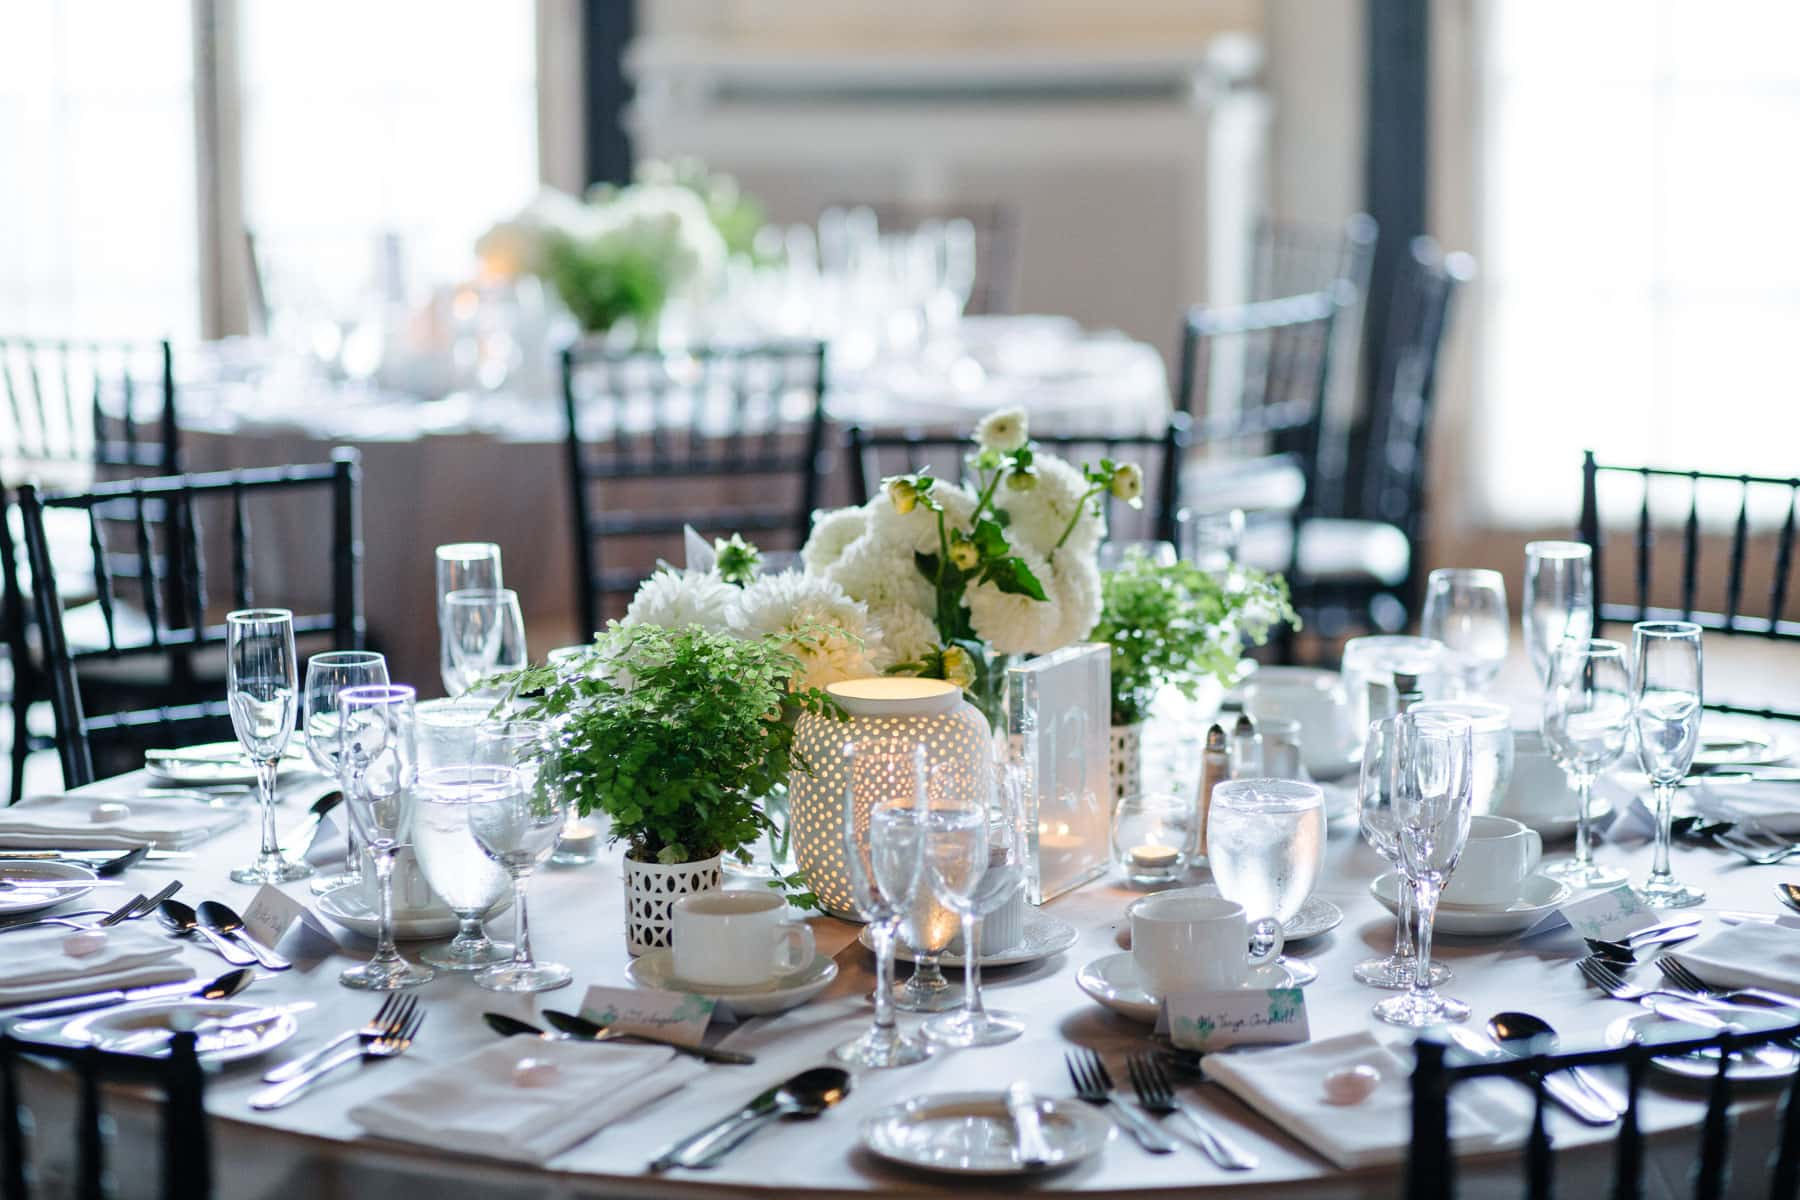 Table setting and floral decorations at this Boulevard Club wedding in Toronto.